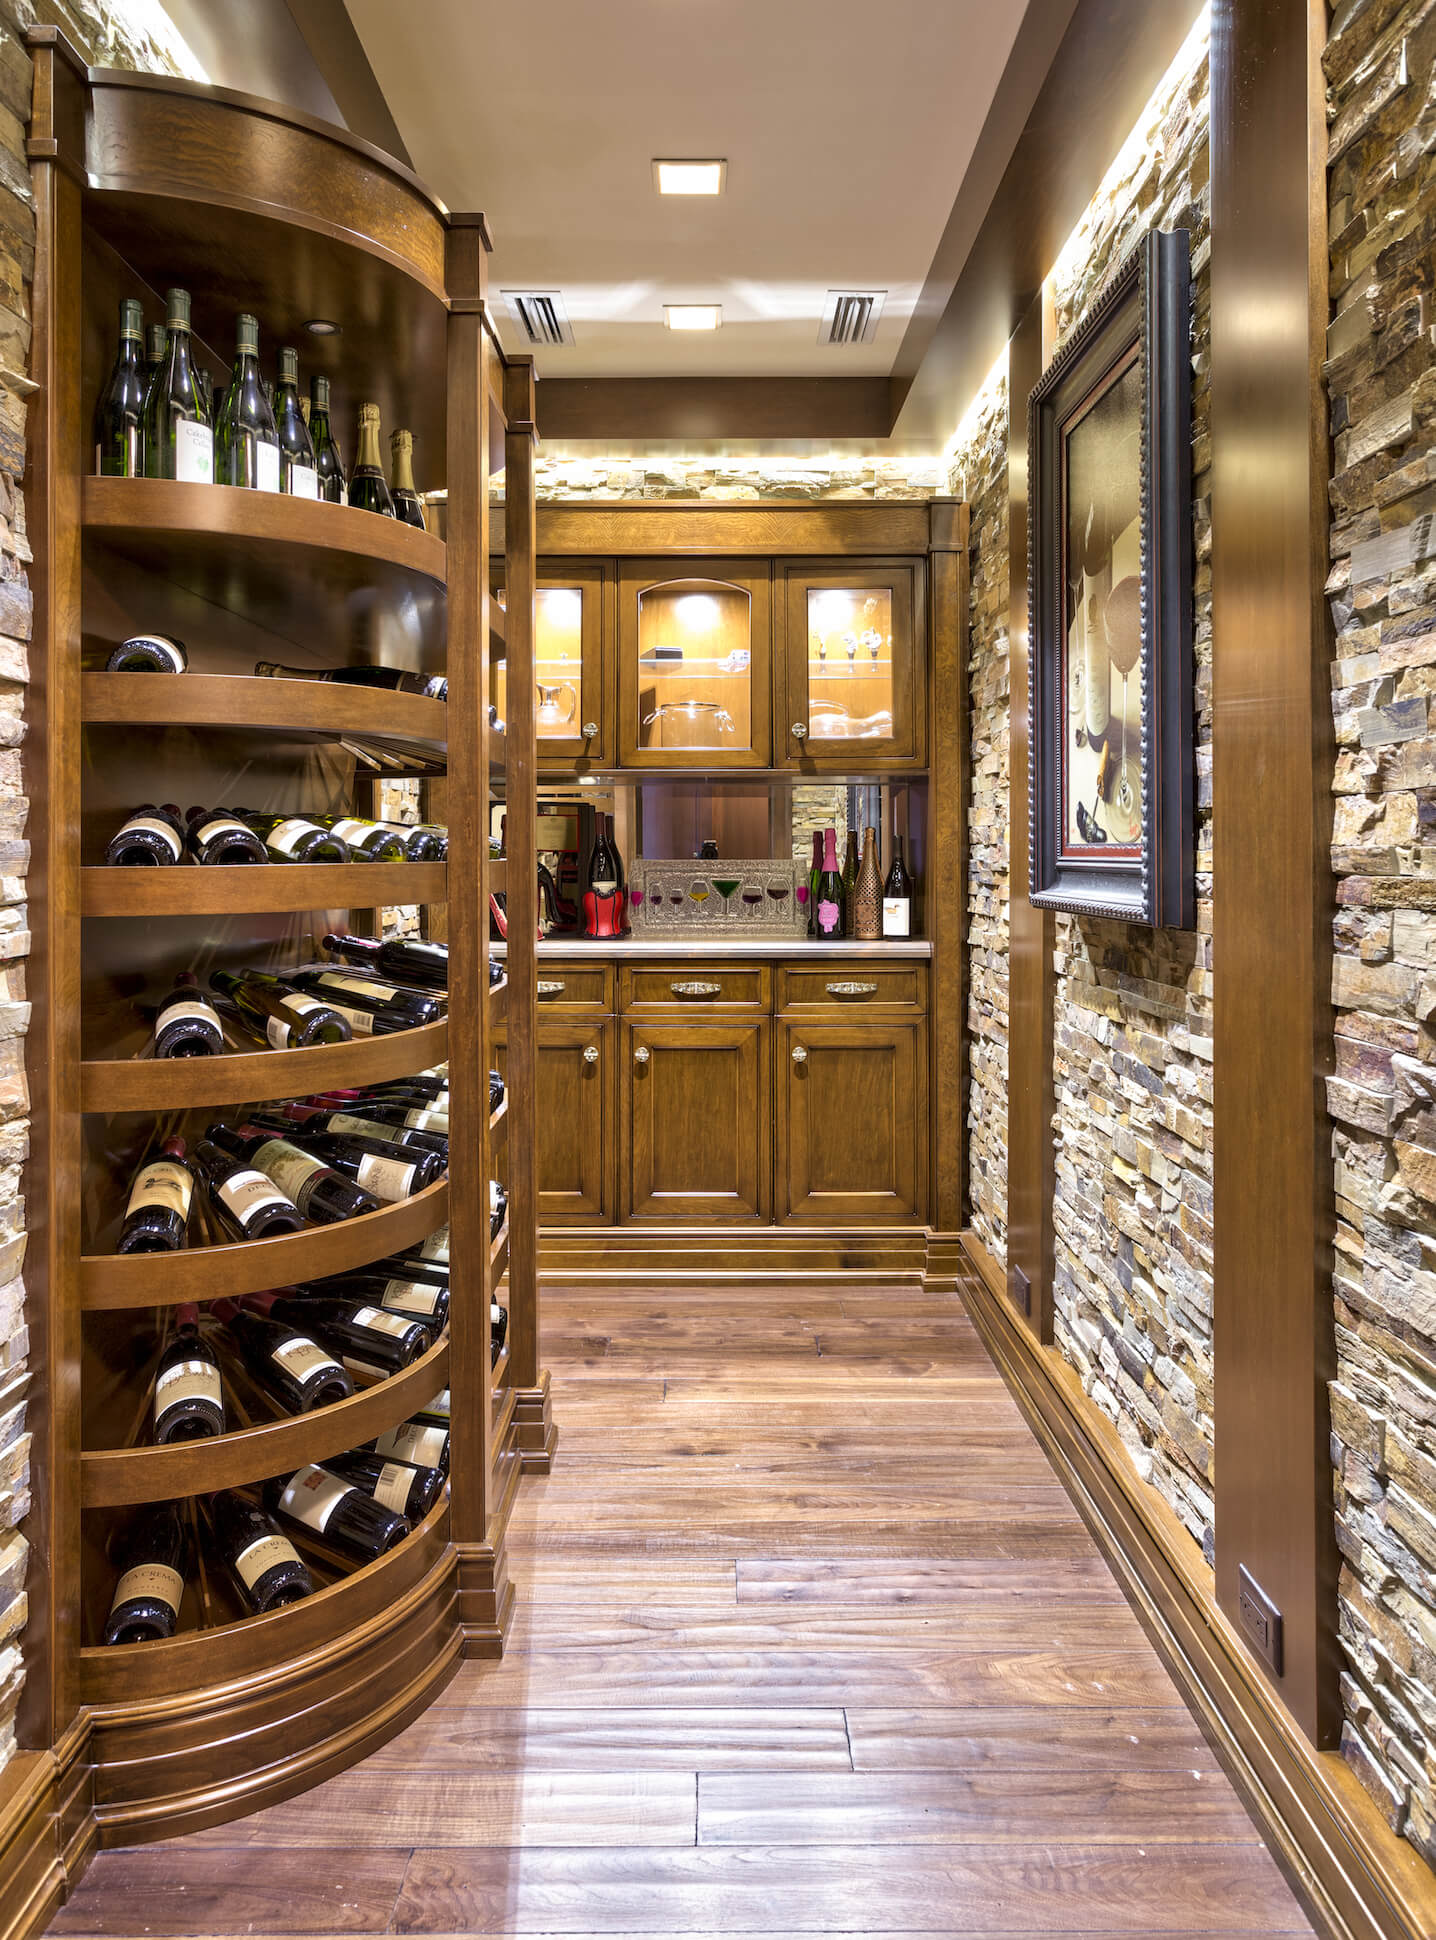 The luxurious wine cellar is decked out in a mixture of stone brick and rich timber, with curved racks at right, and small bar at center. Inner-lit cabinetry allows for bold display of glassware.